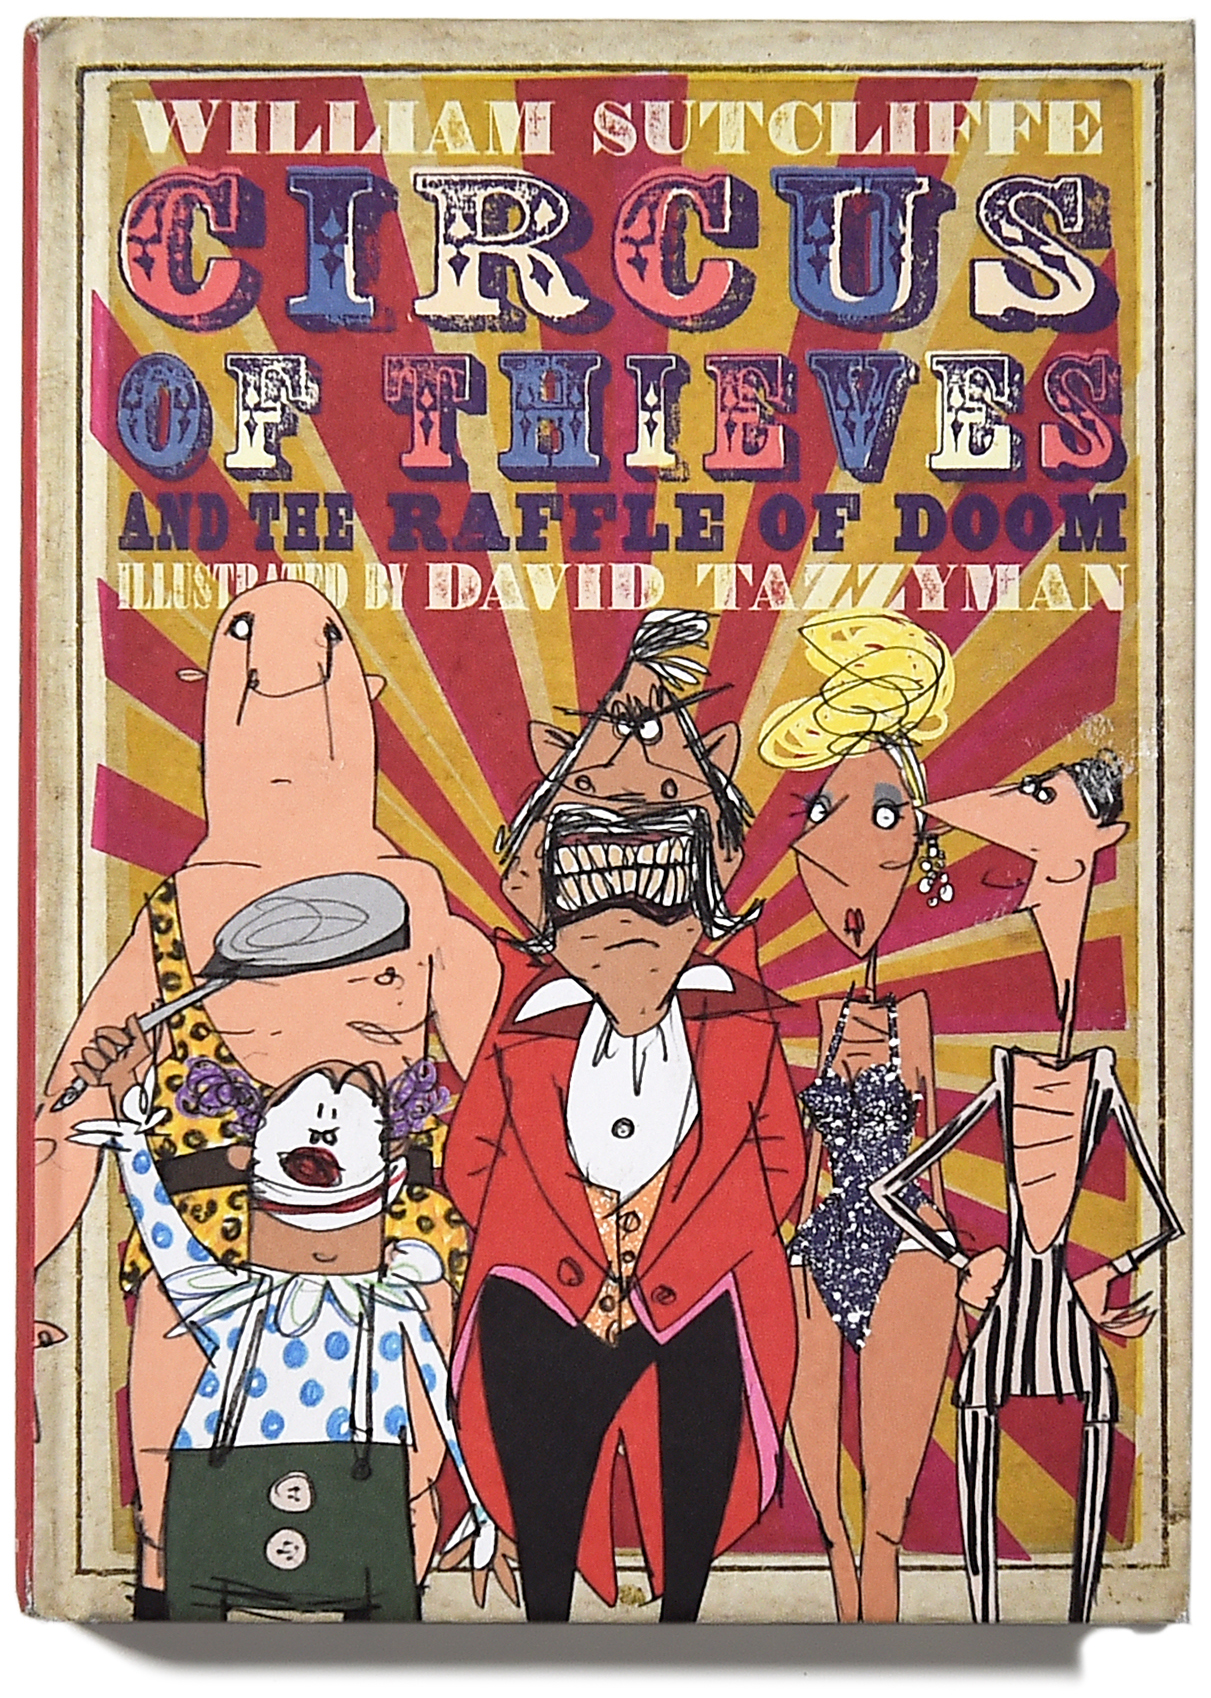 Circus of Thieves and the Raffle of Doom cover.FIN.jpg